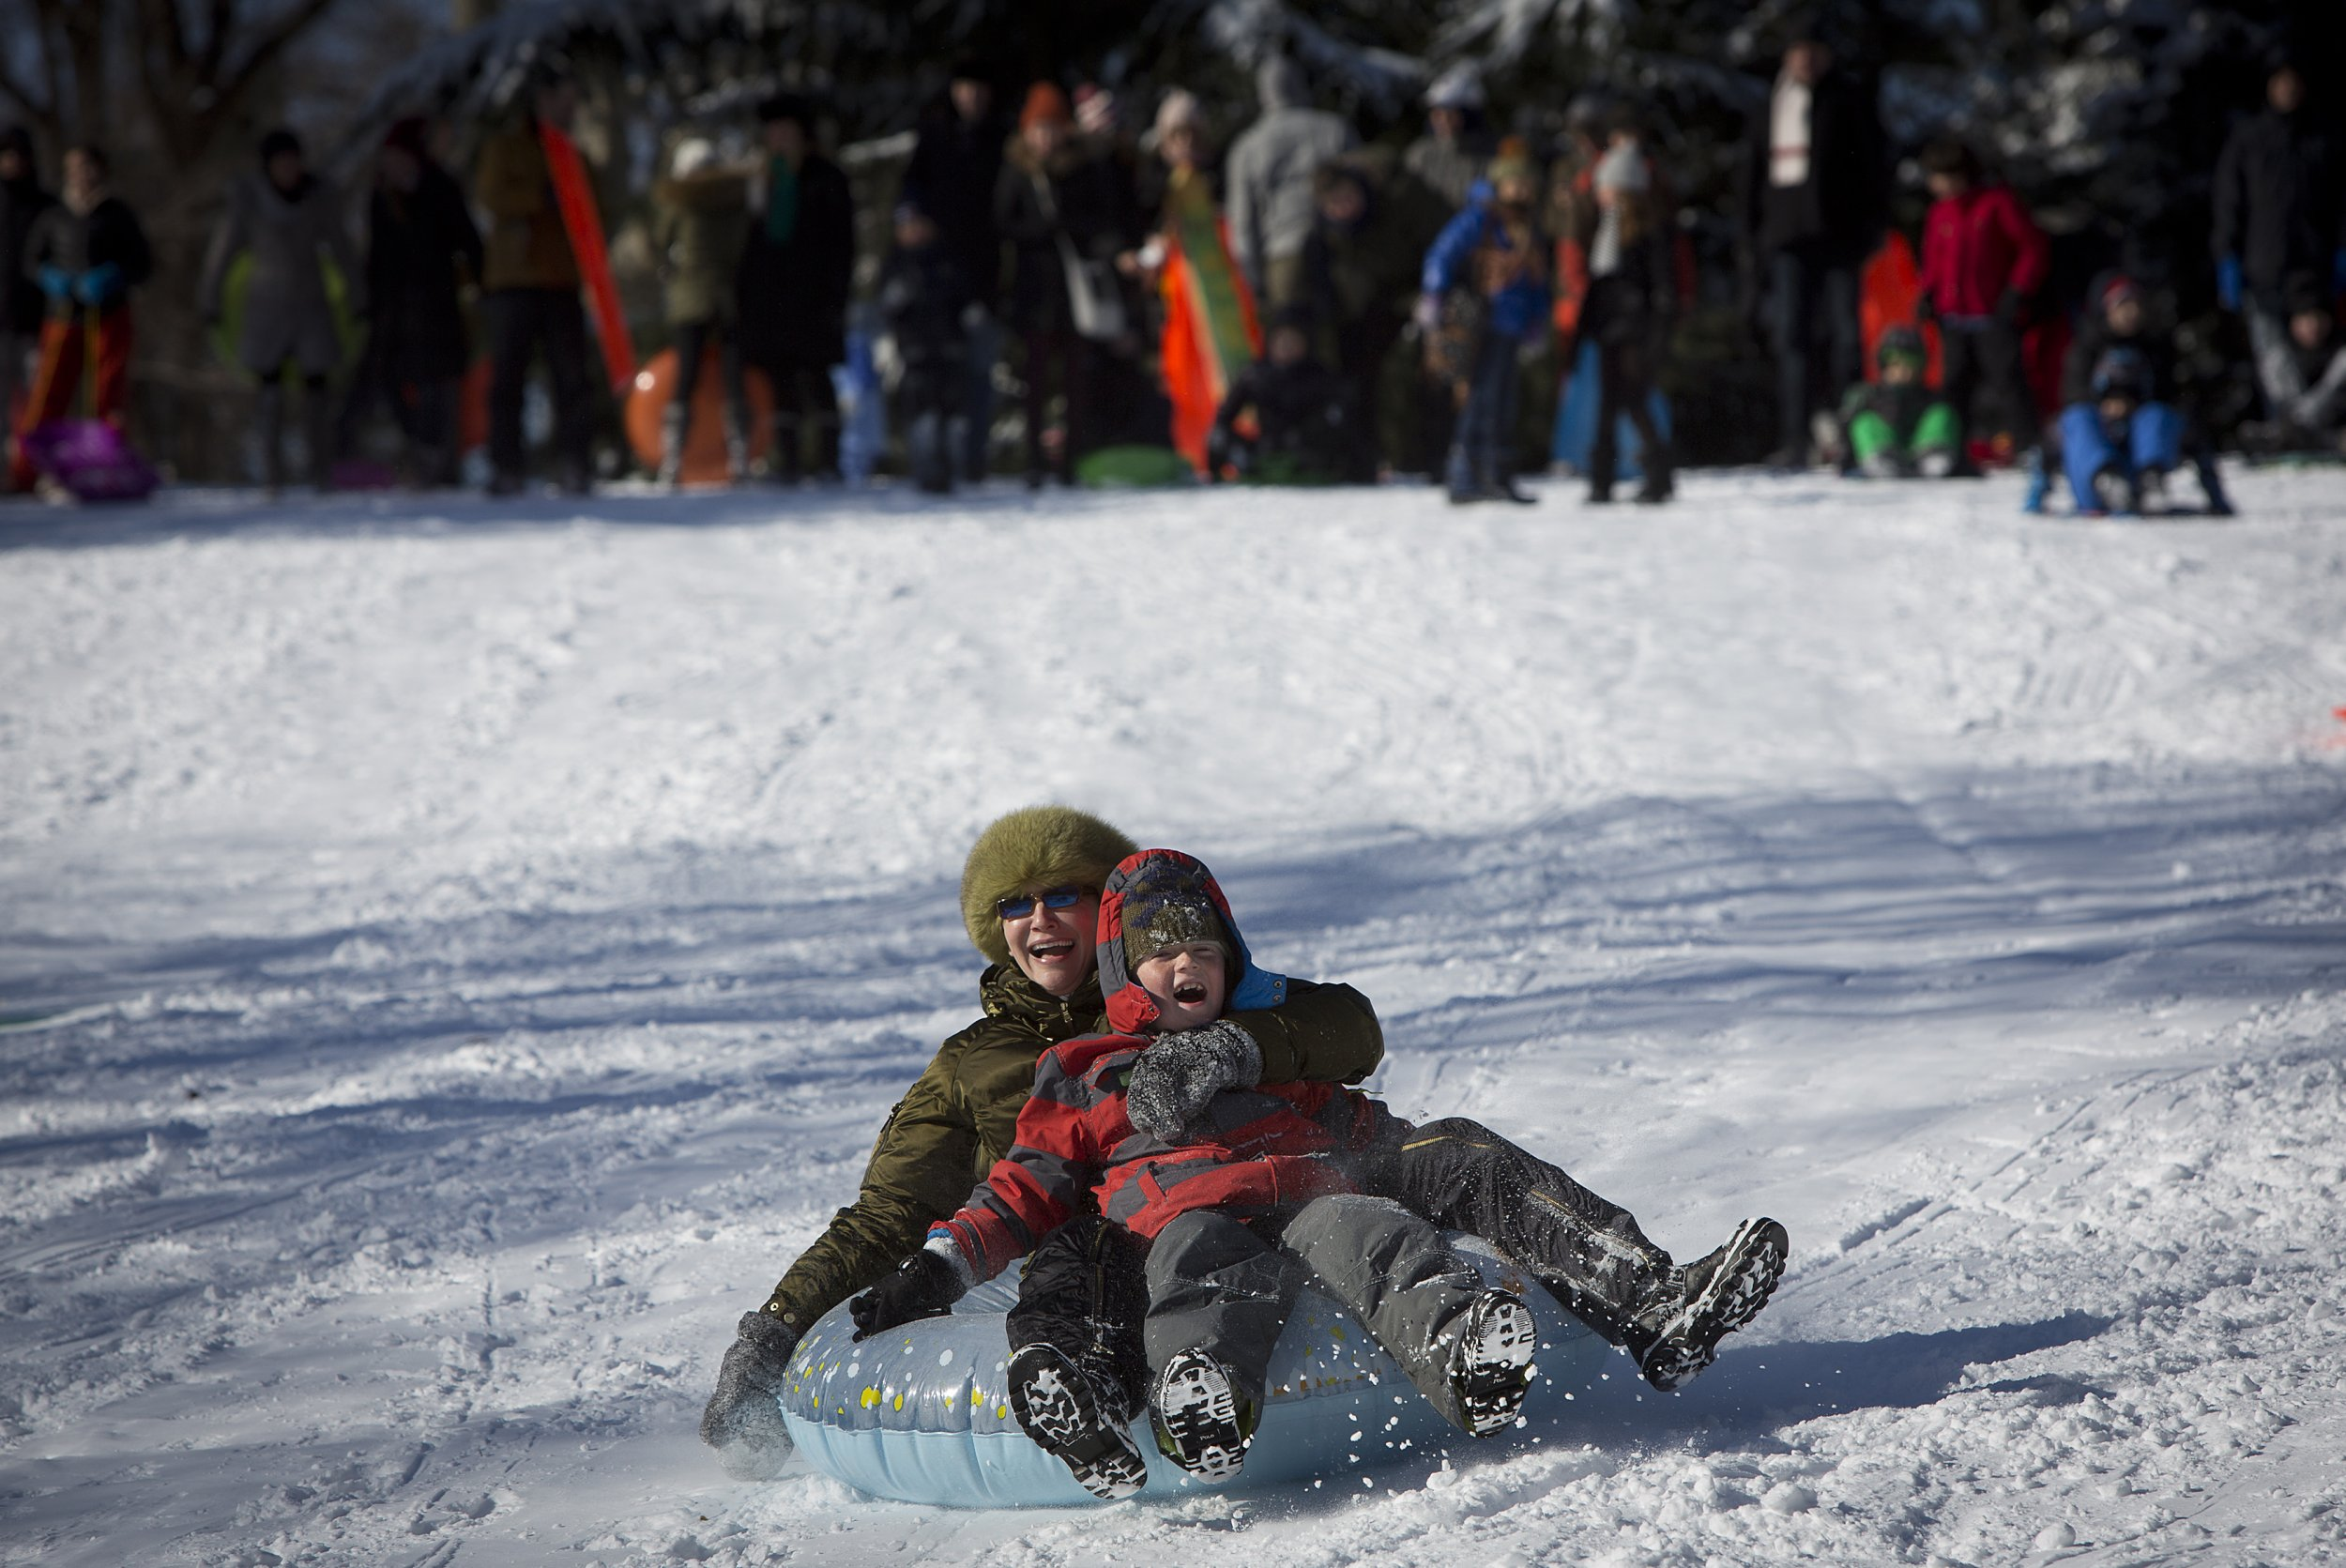 Sledding Ban Coming To A City Near You - The best sledding hills in north america